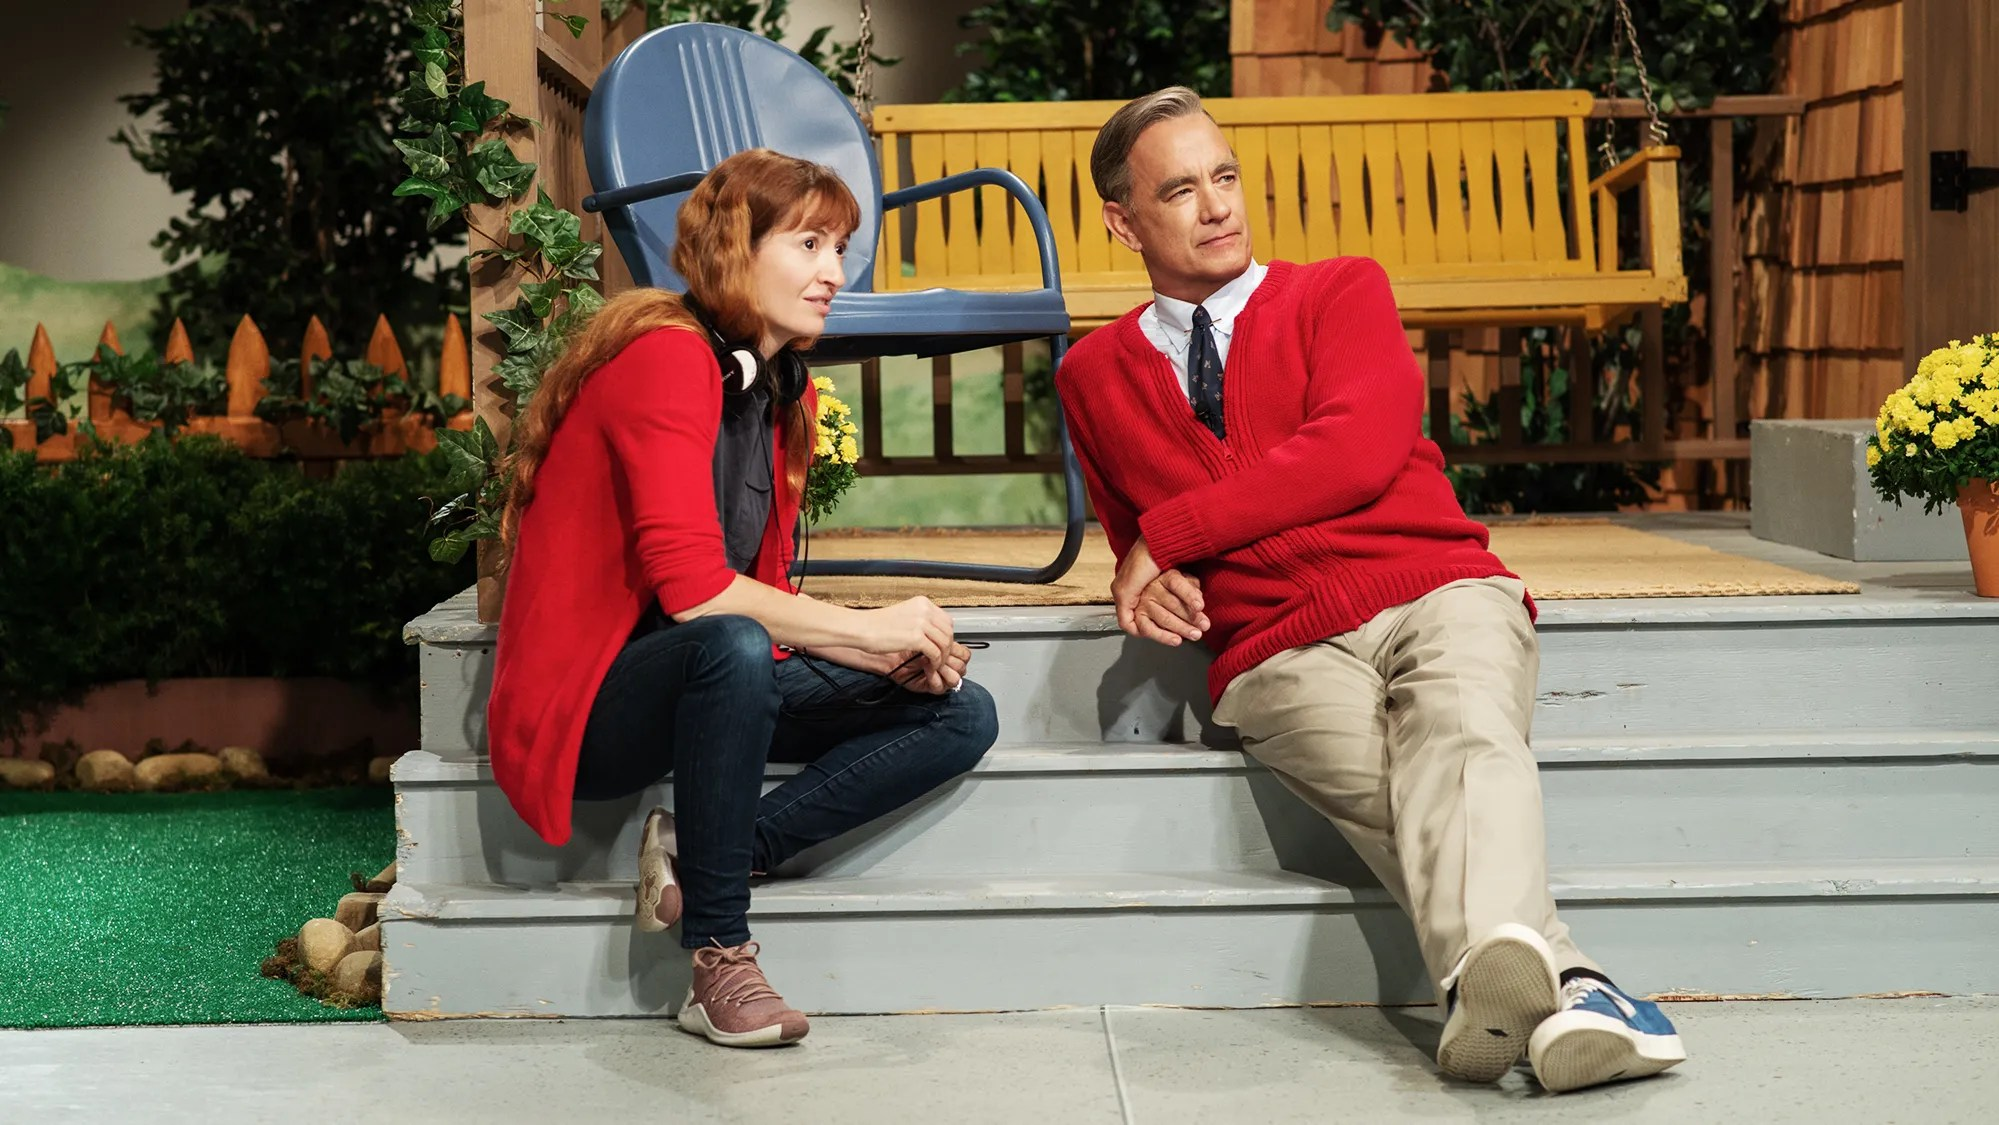 The Fred Rogers Moment That Made Tom Hanks Bawl His Eyes